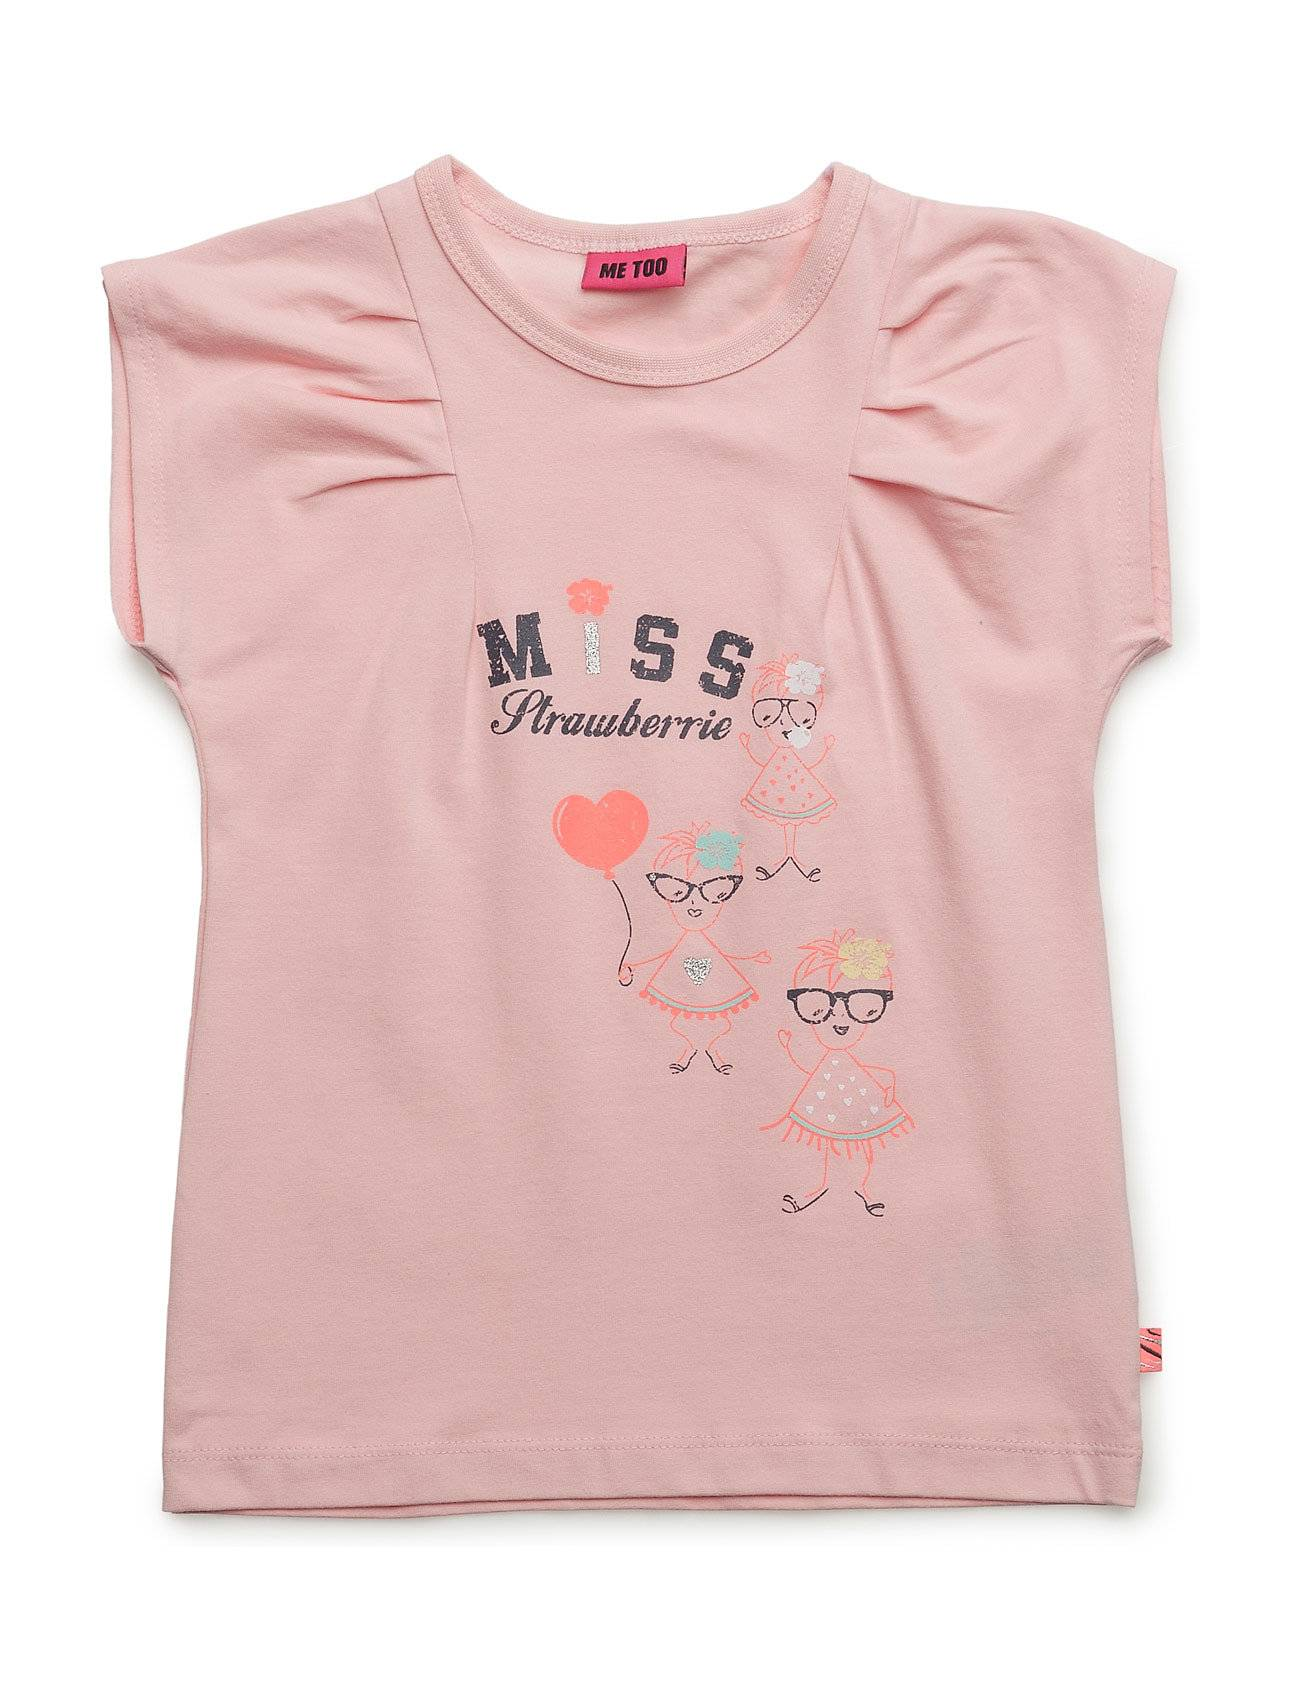 MeToo Lissi 307 -Top Ss